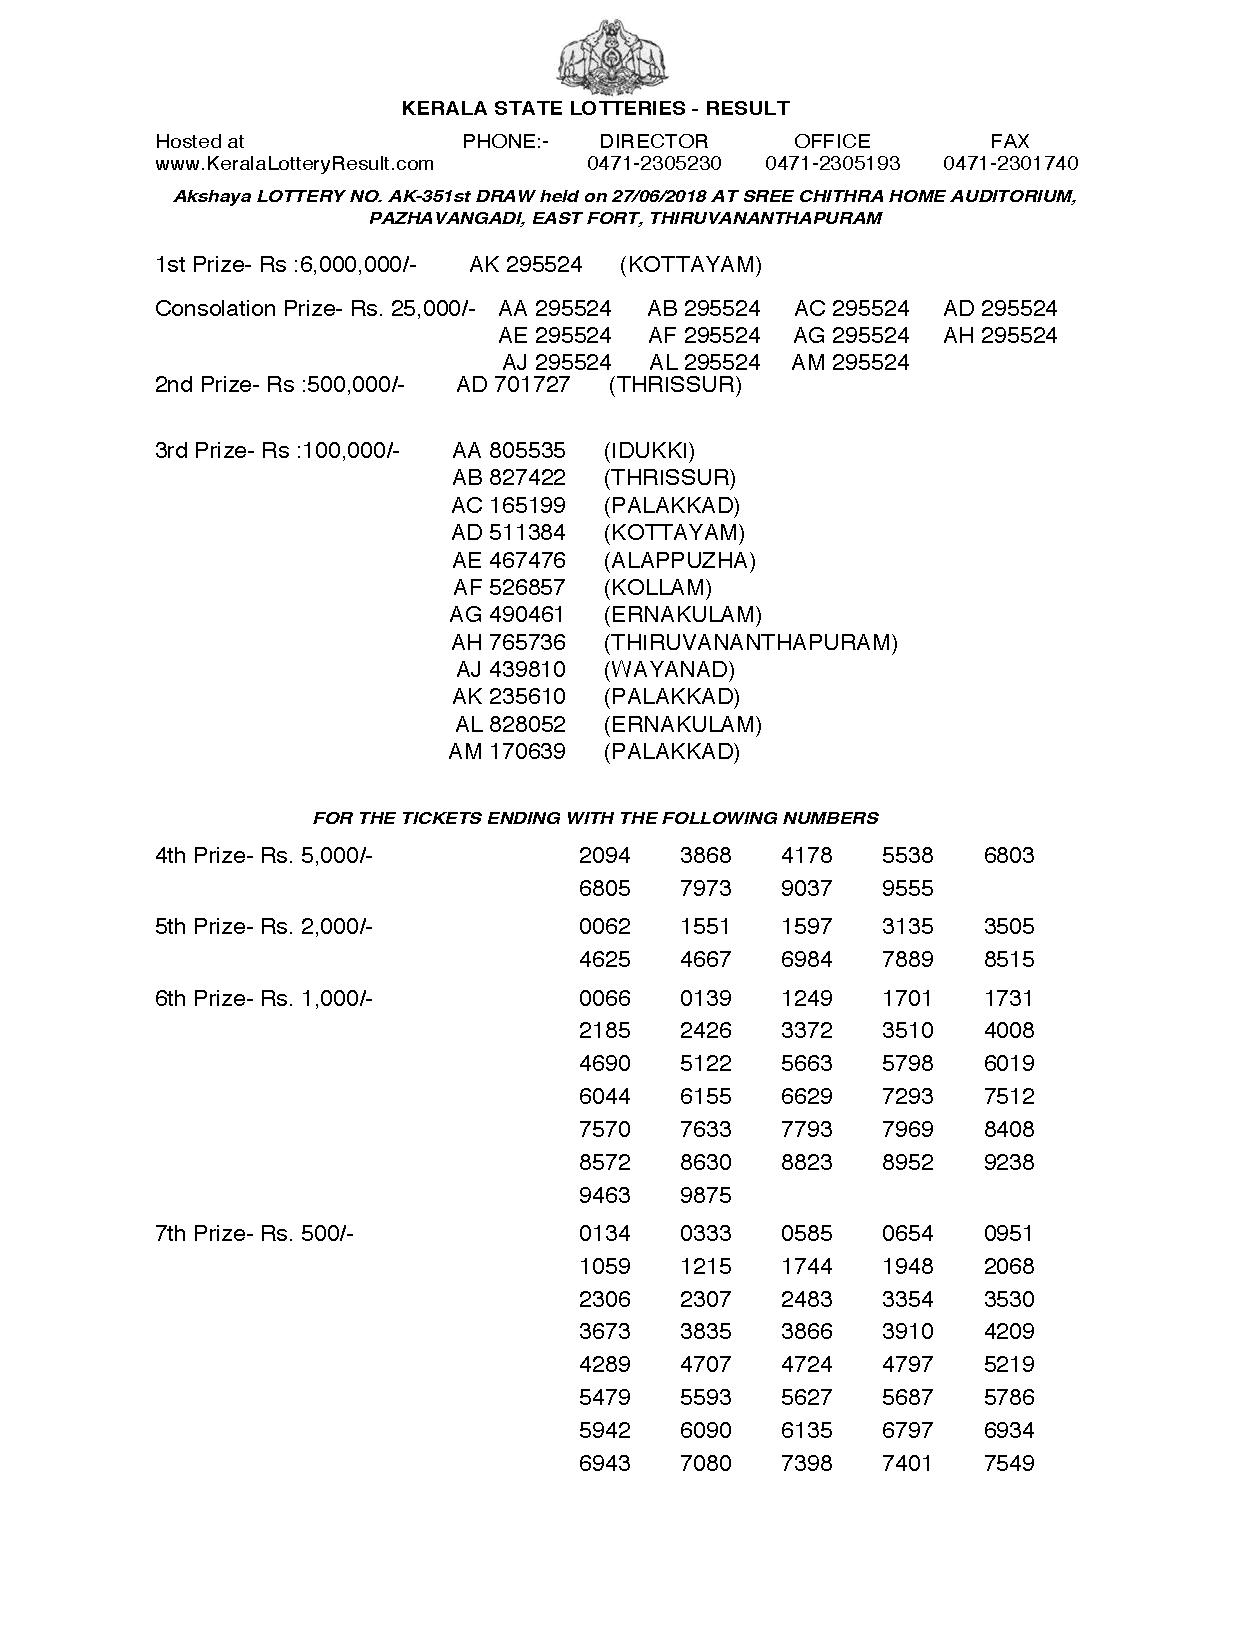 Akshaya AK351 Kerala Lottery Results Screenshot: Page 1